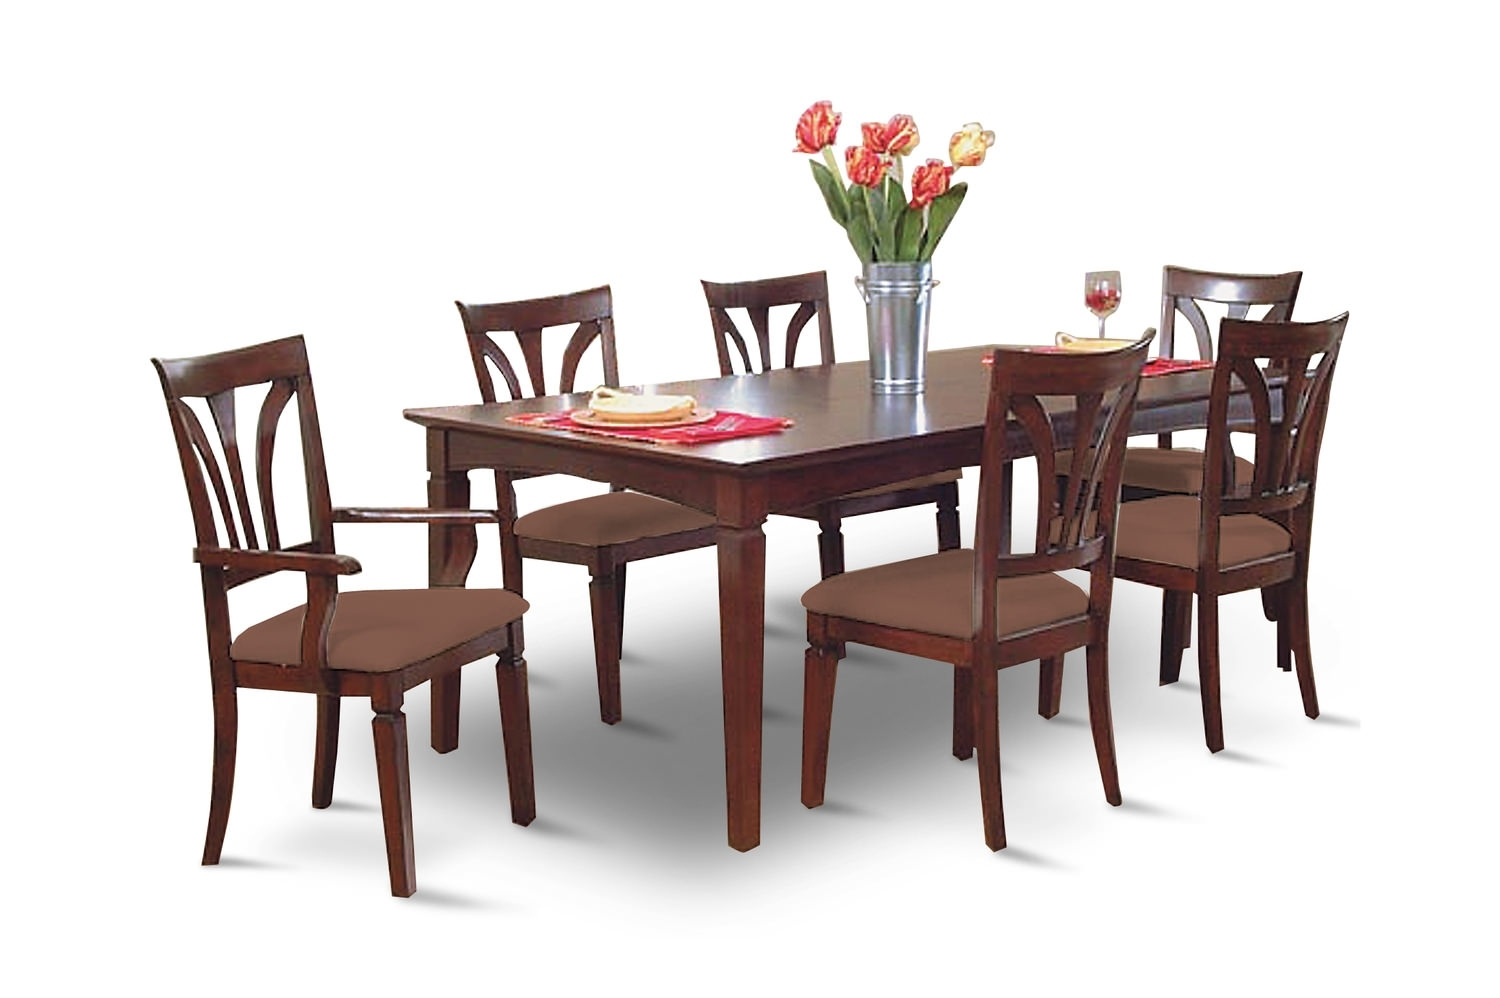 Dining Sets – Kitchen & Dining Room Sets – Hom Furniture Within Current Chapleau Ii 9 Piece Extension Dining Table Sets (Image 16 of 20)